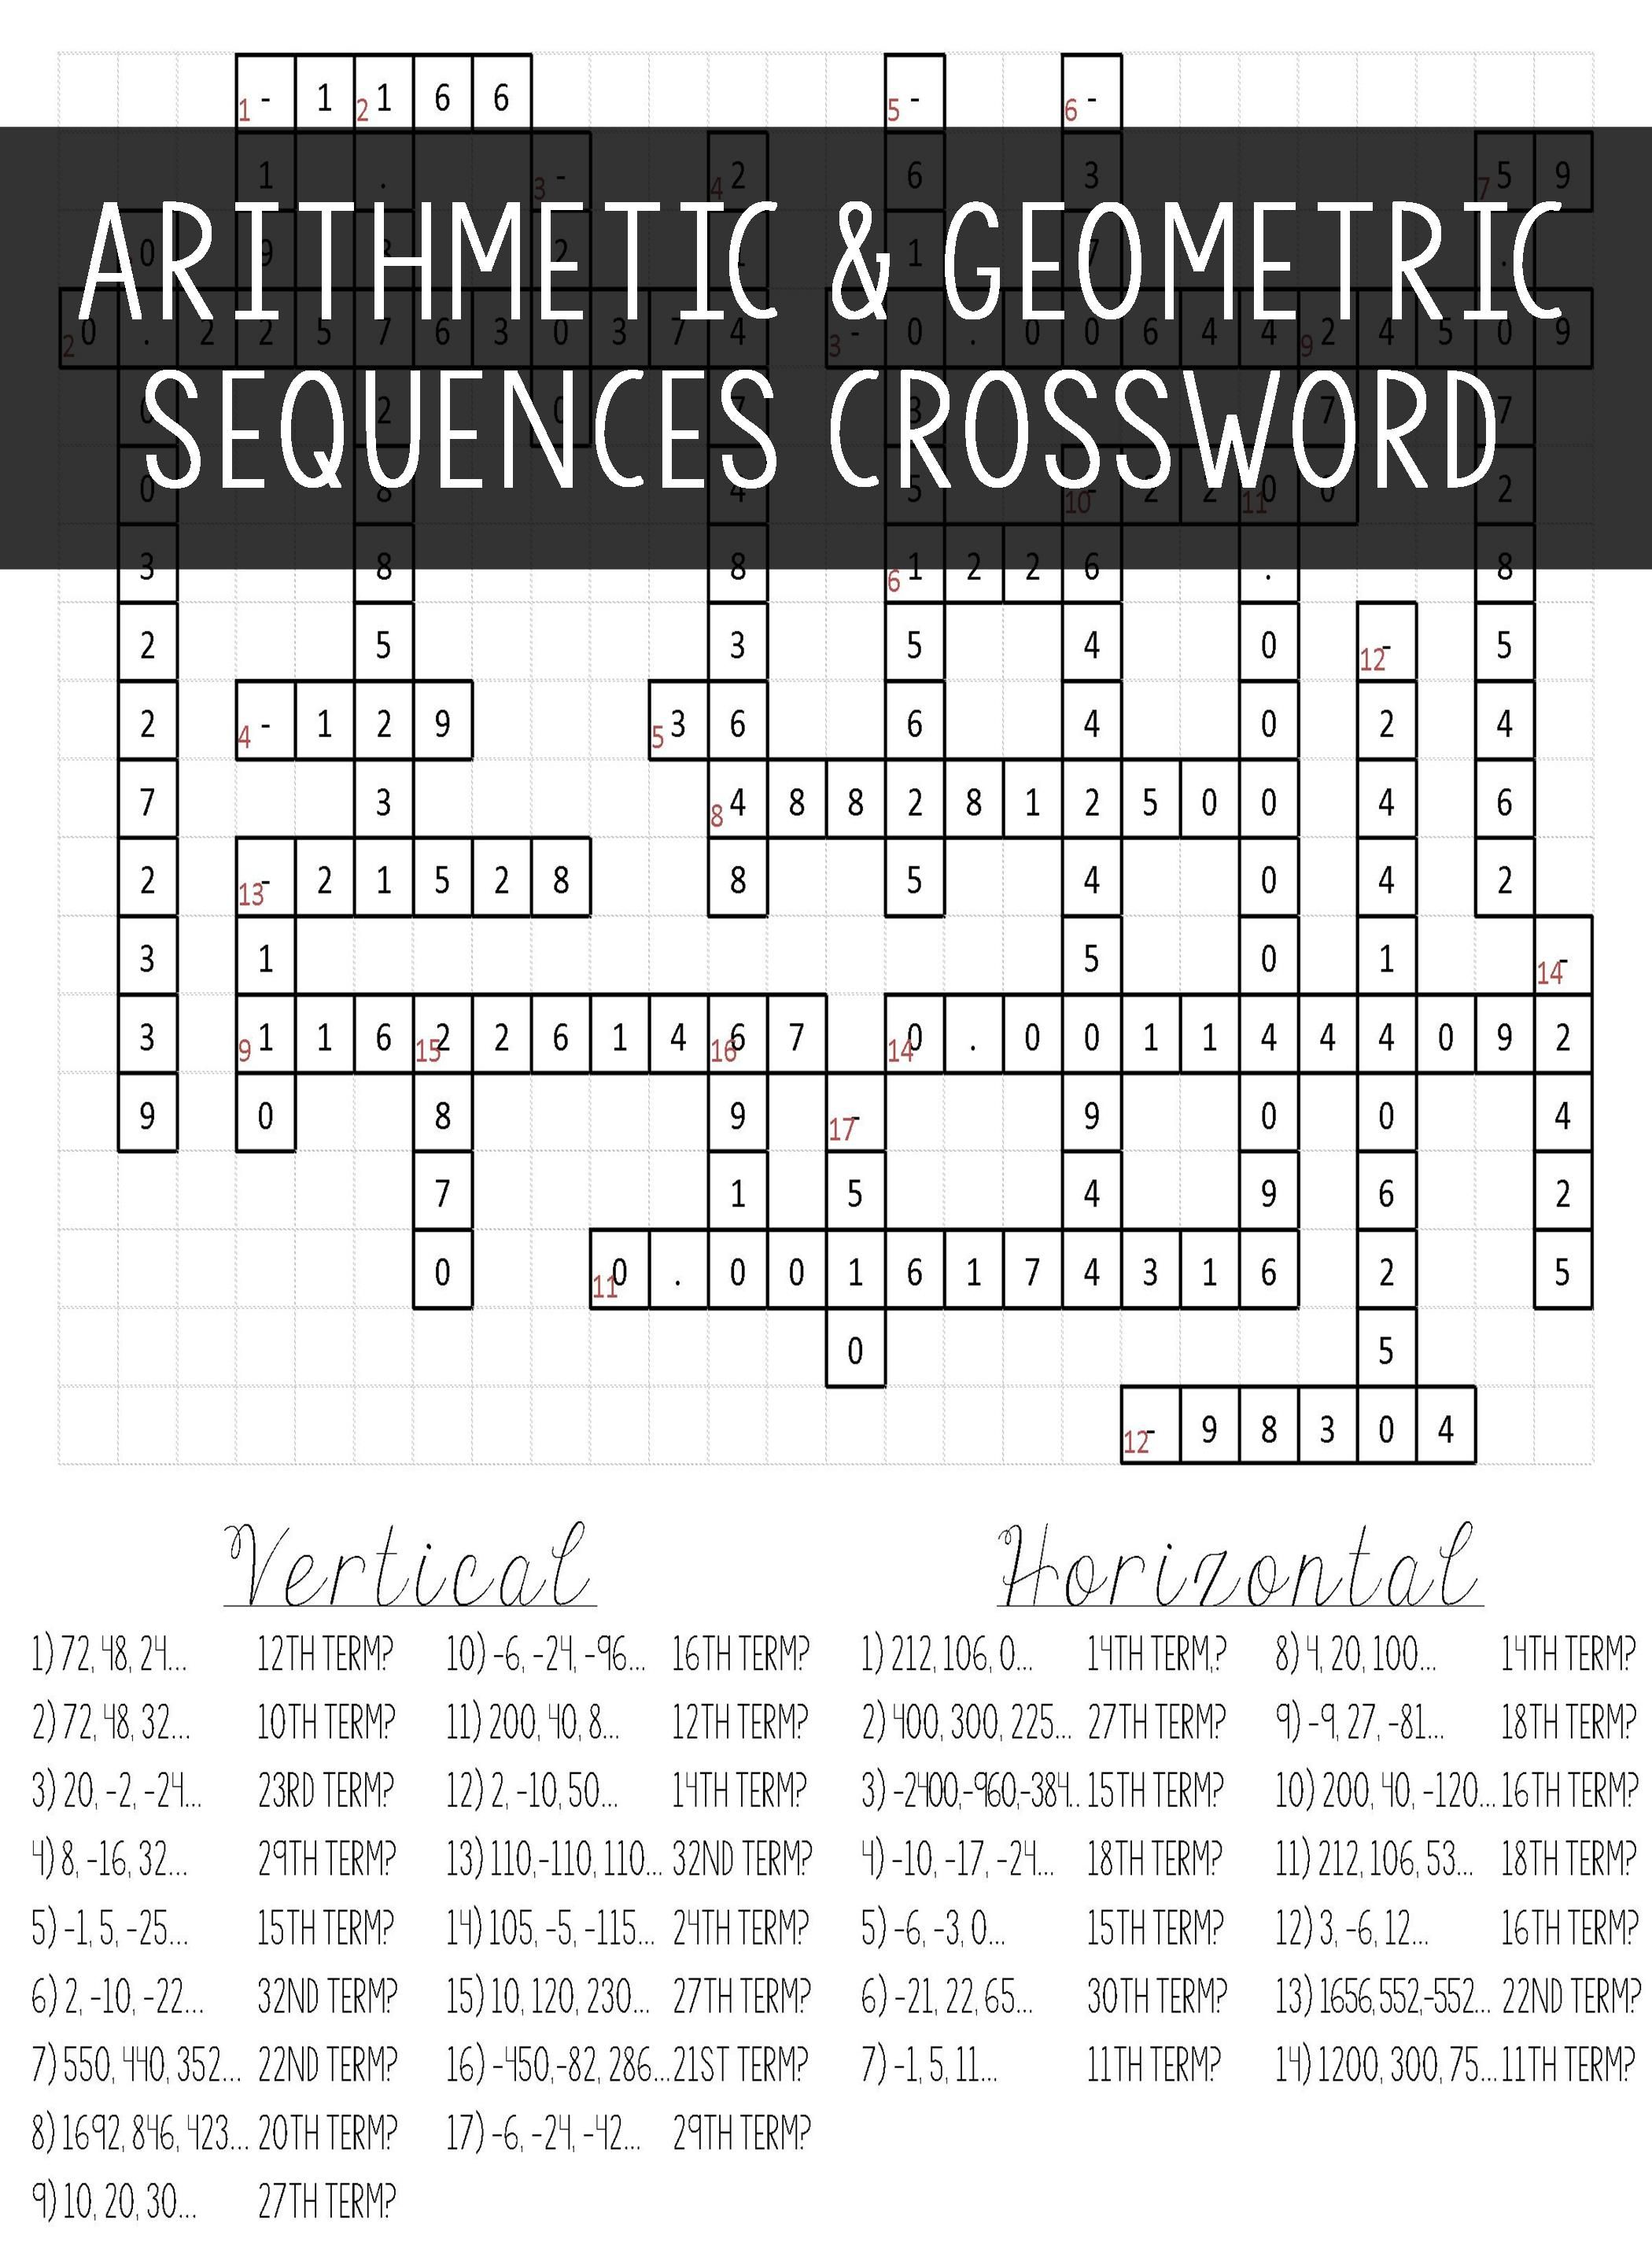 medium resolution of Arithmetic \u0026 Geometric Sequences Crossword Puzzle Activity Worksheet    Arithmetic sequences